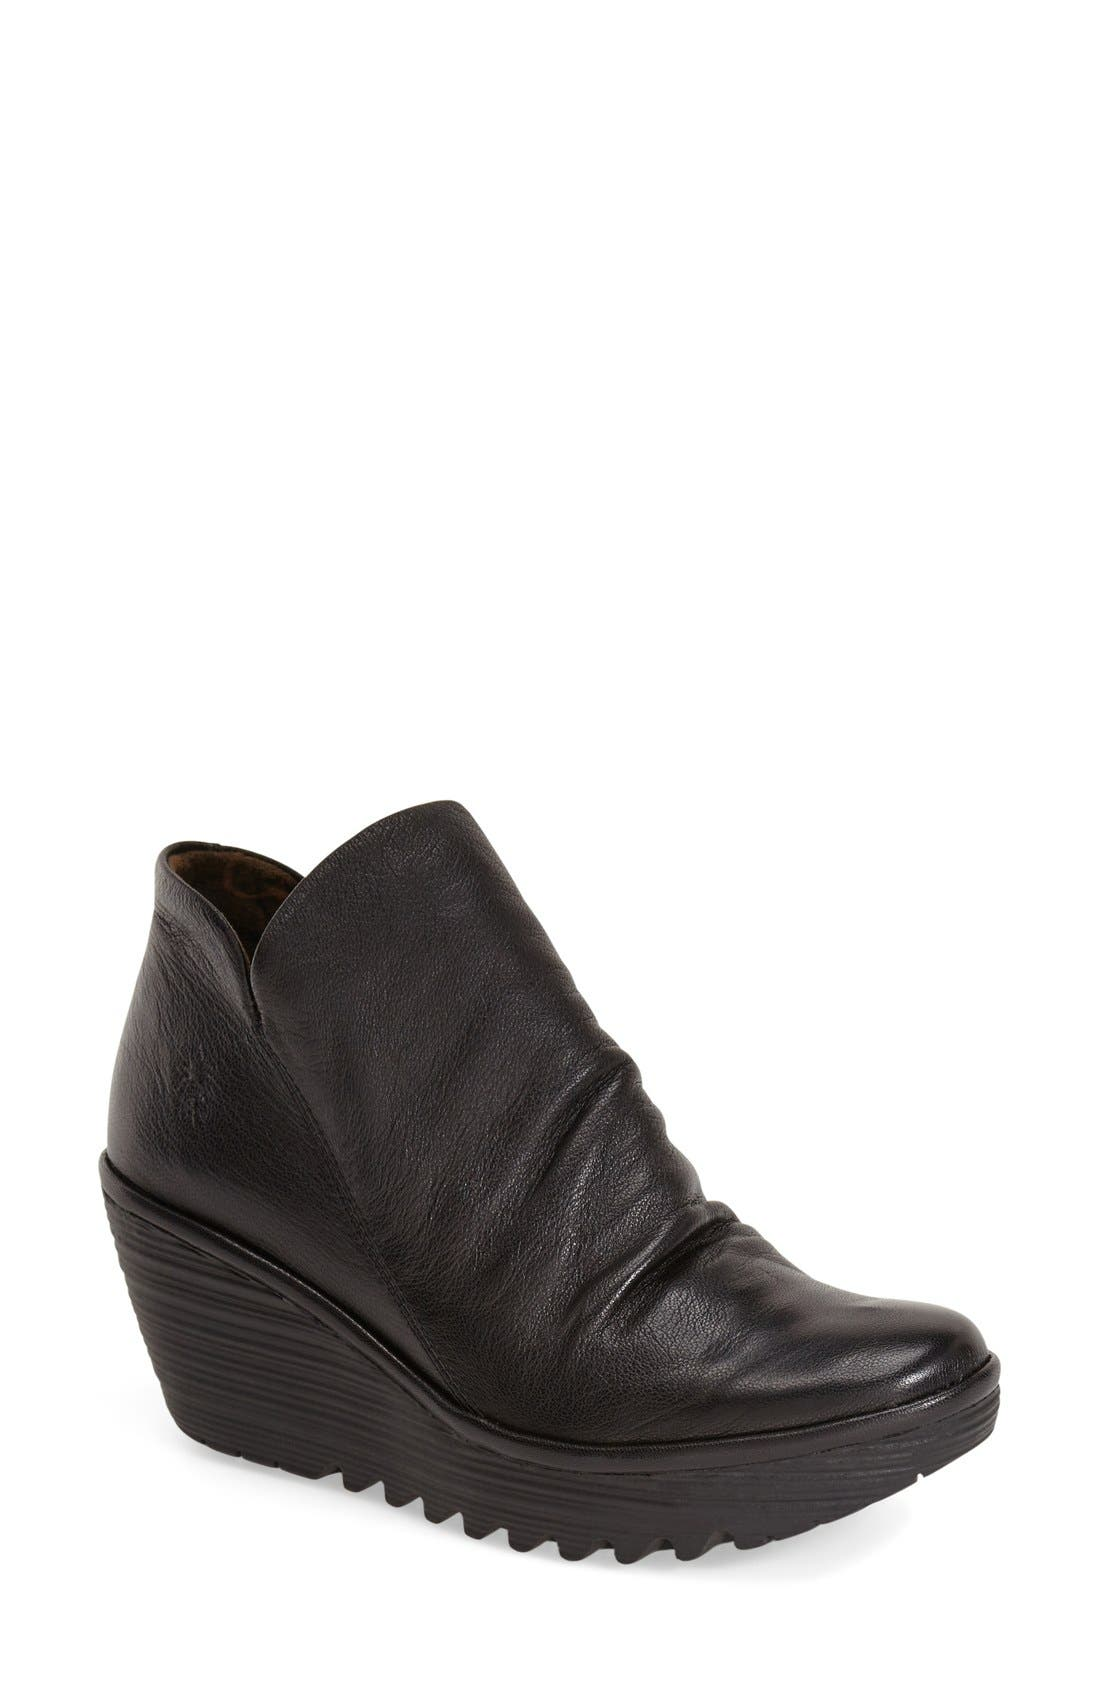 Alternate Image 1 Selected - Fly London 'Yip' Wedge Bootie (Women)